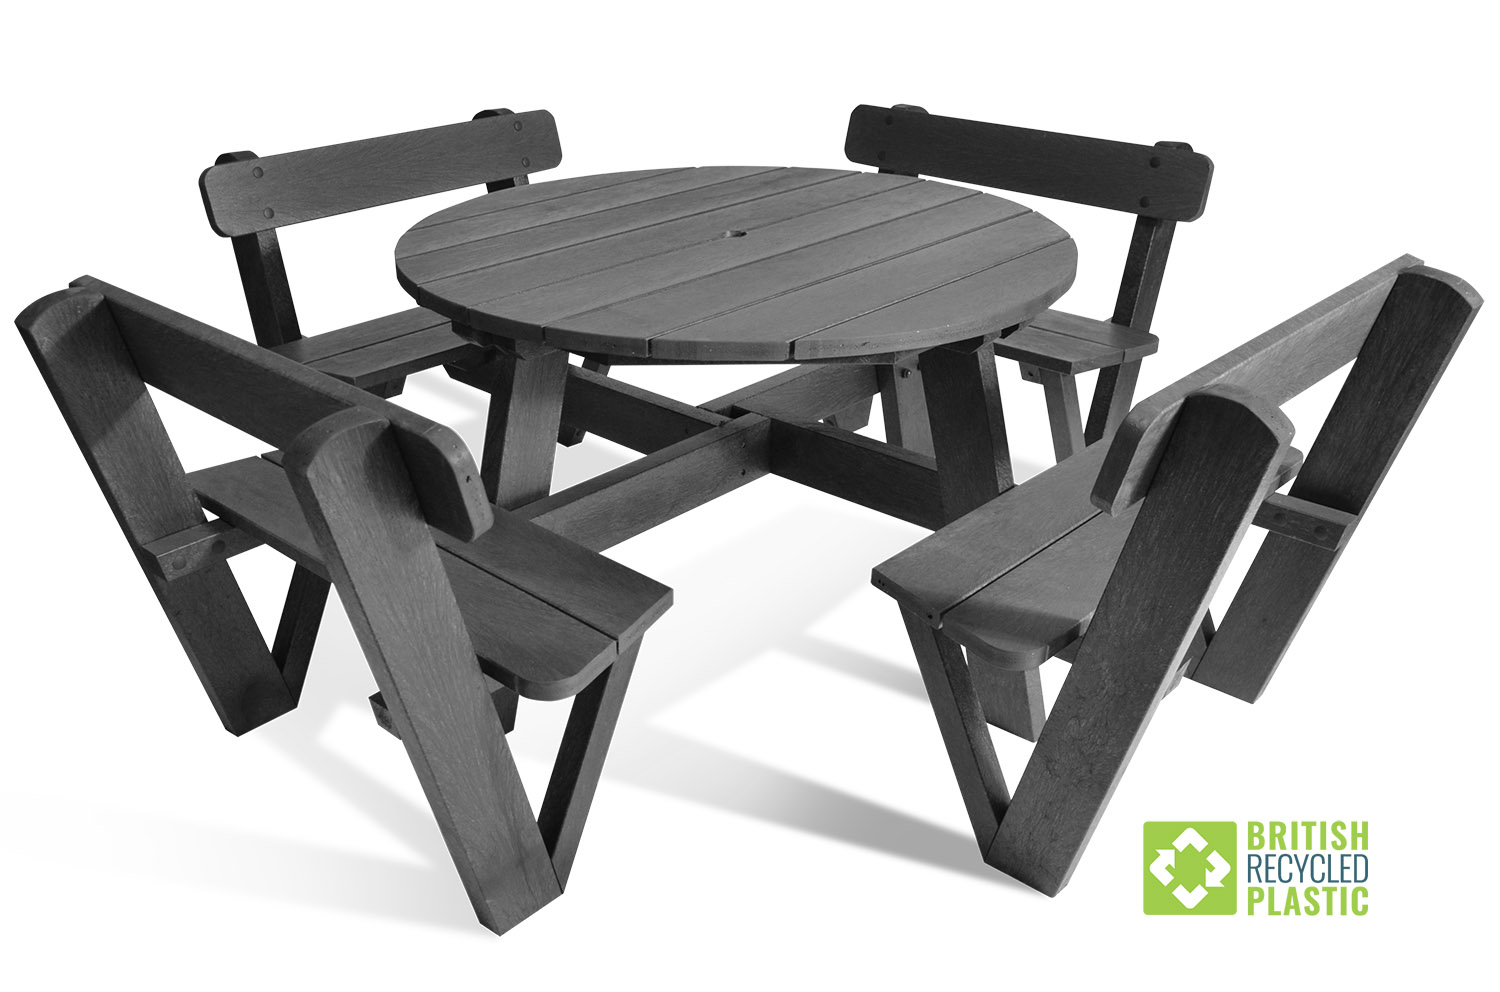 The Calder 8 seater recycled plastic picnic table with backrest